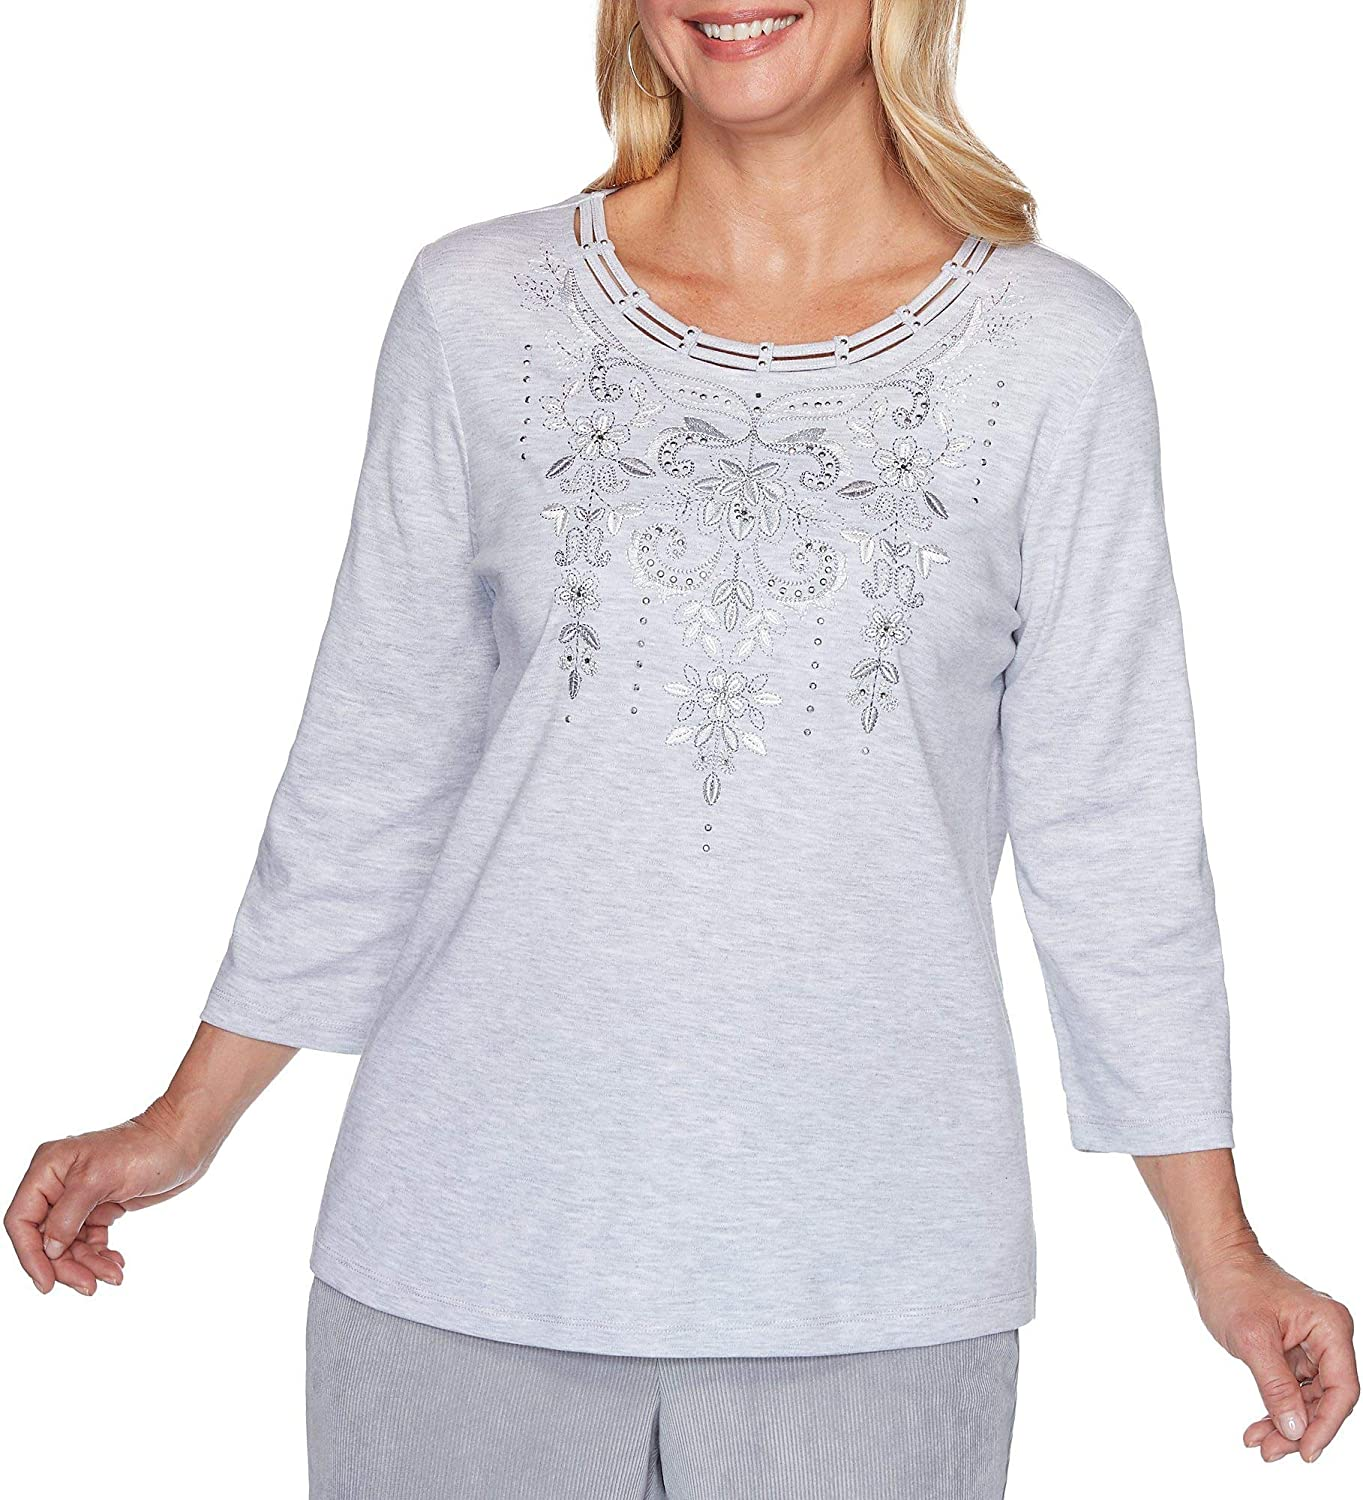 Alfred Dunner Petite Lake Geneva Scroll Embroidered Neck Top Large Petite Pearl Grey